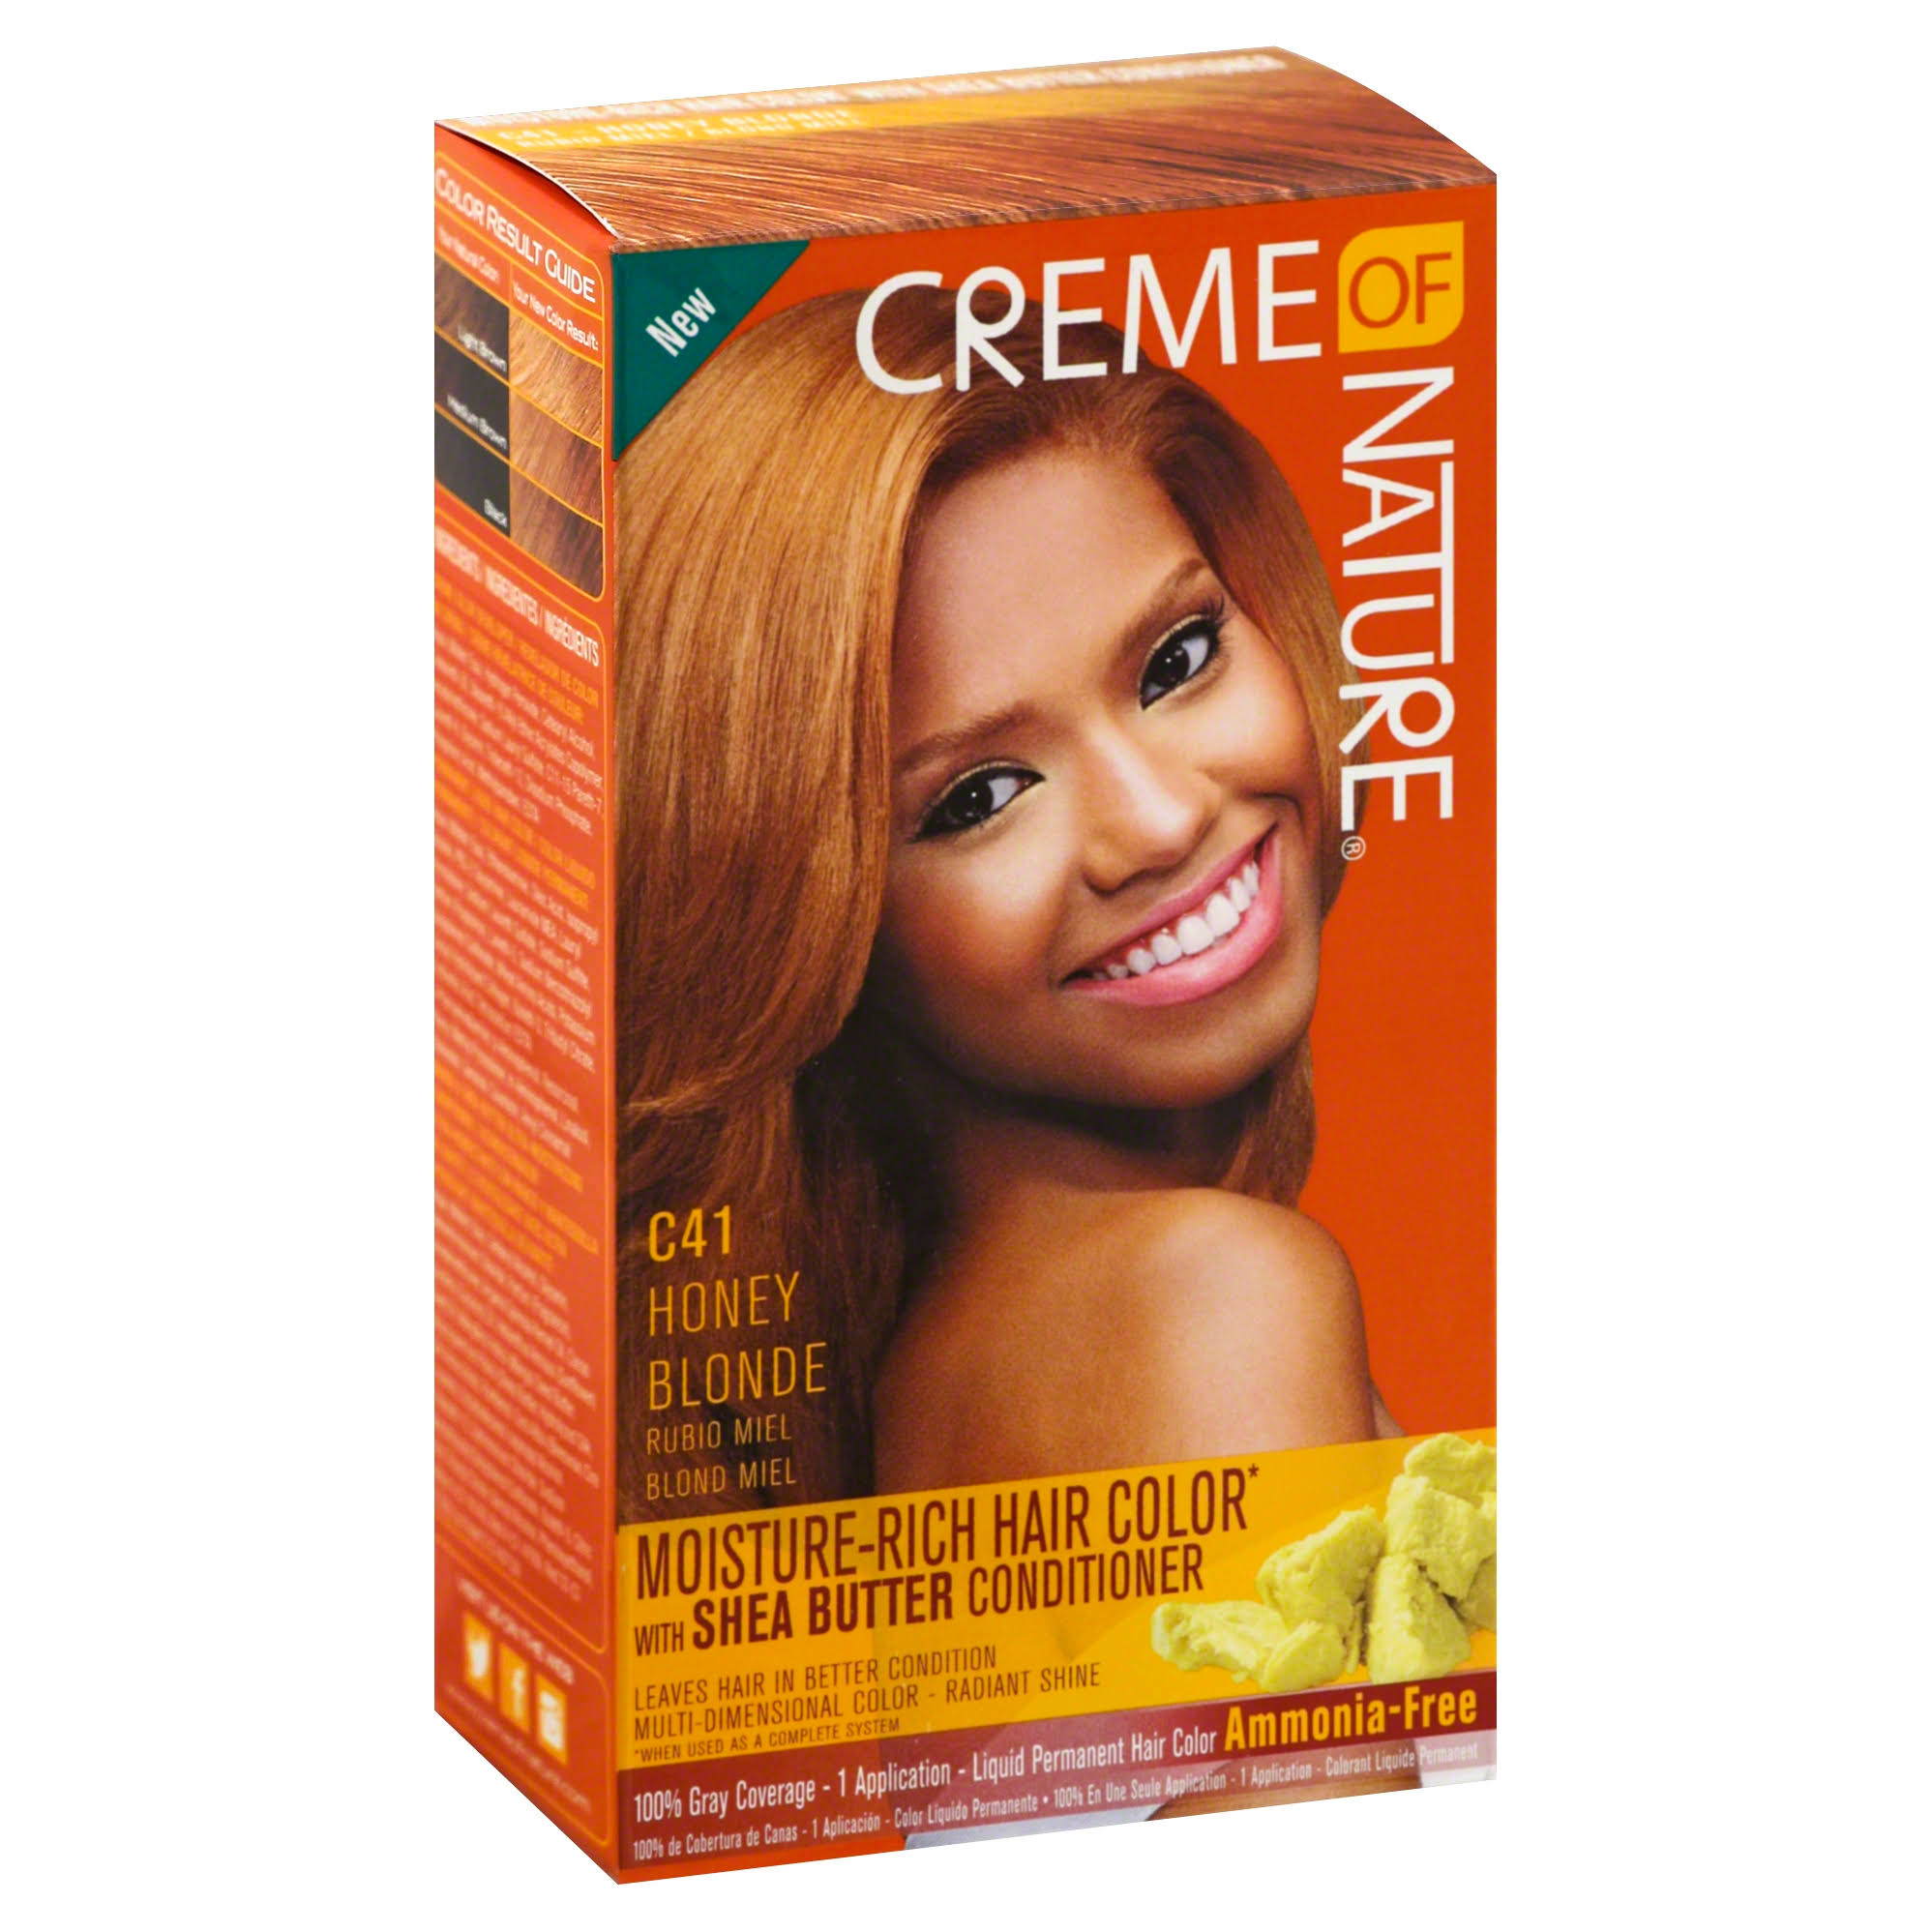 Creme of Nature Moisture Rich Hair Color Kit - C41 Honey Blonde